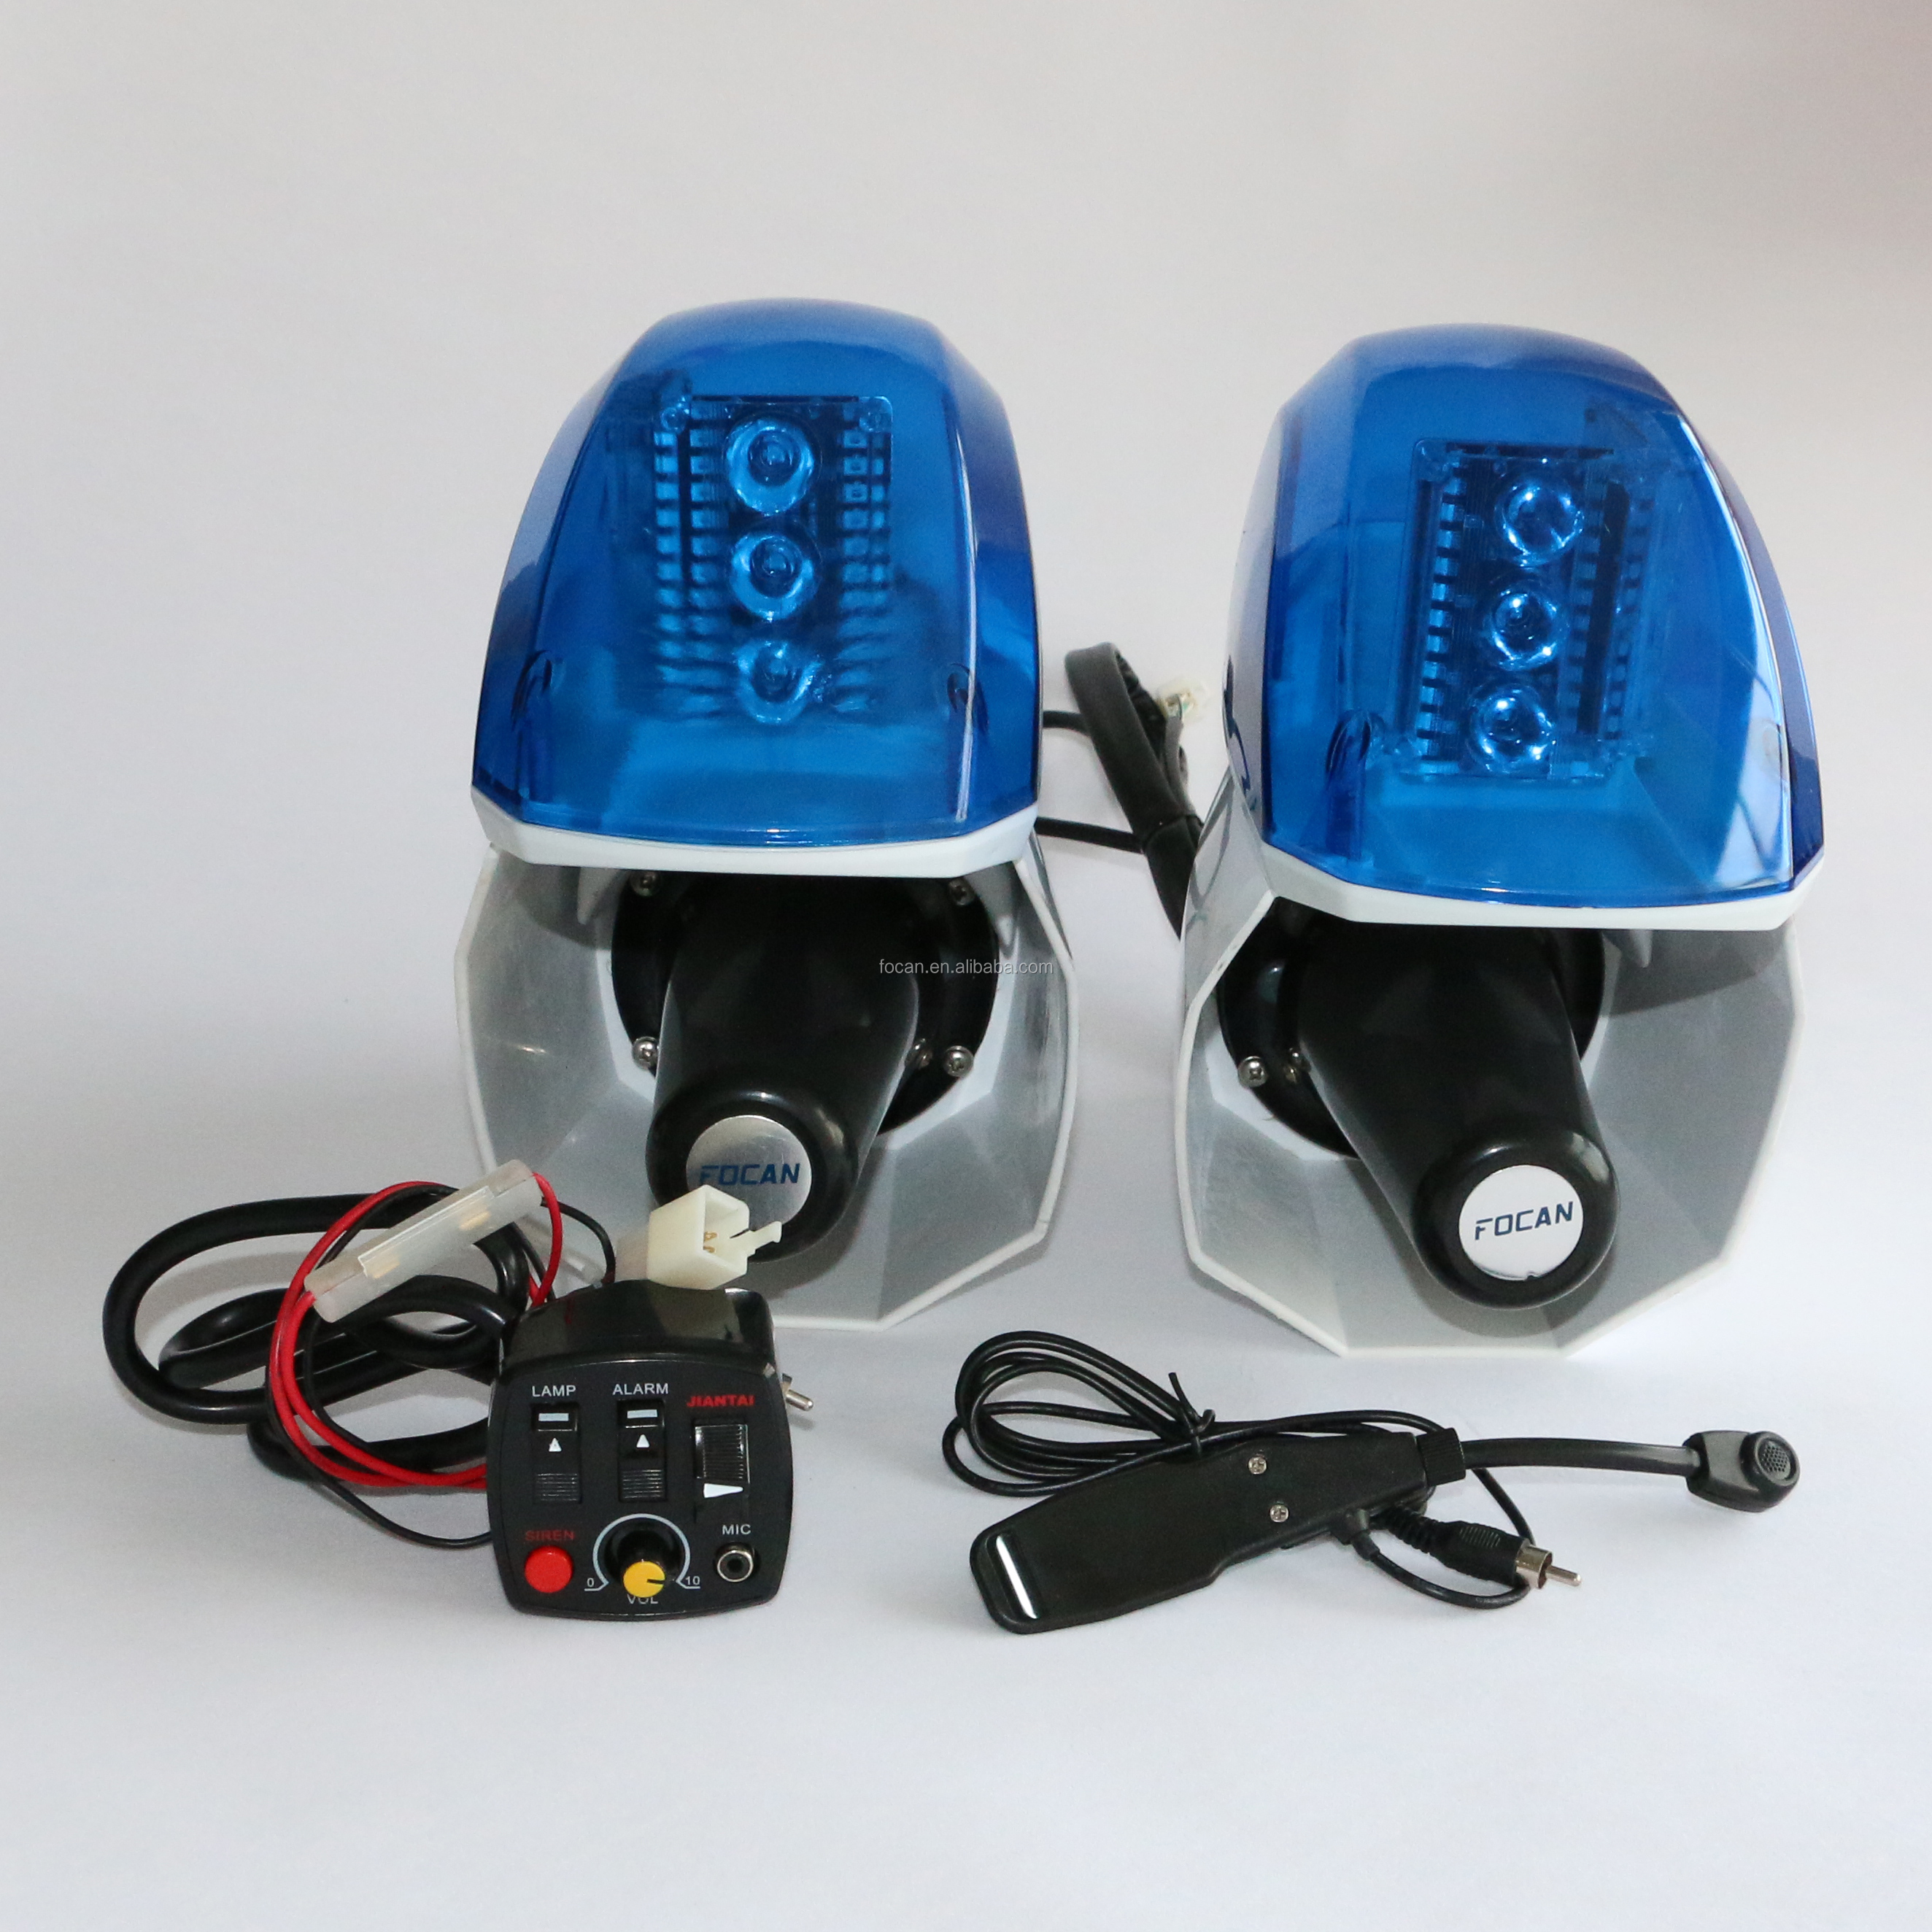 police Motorcycle siren and speaker with warning light